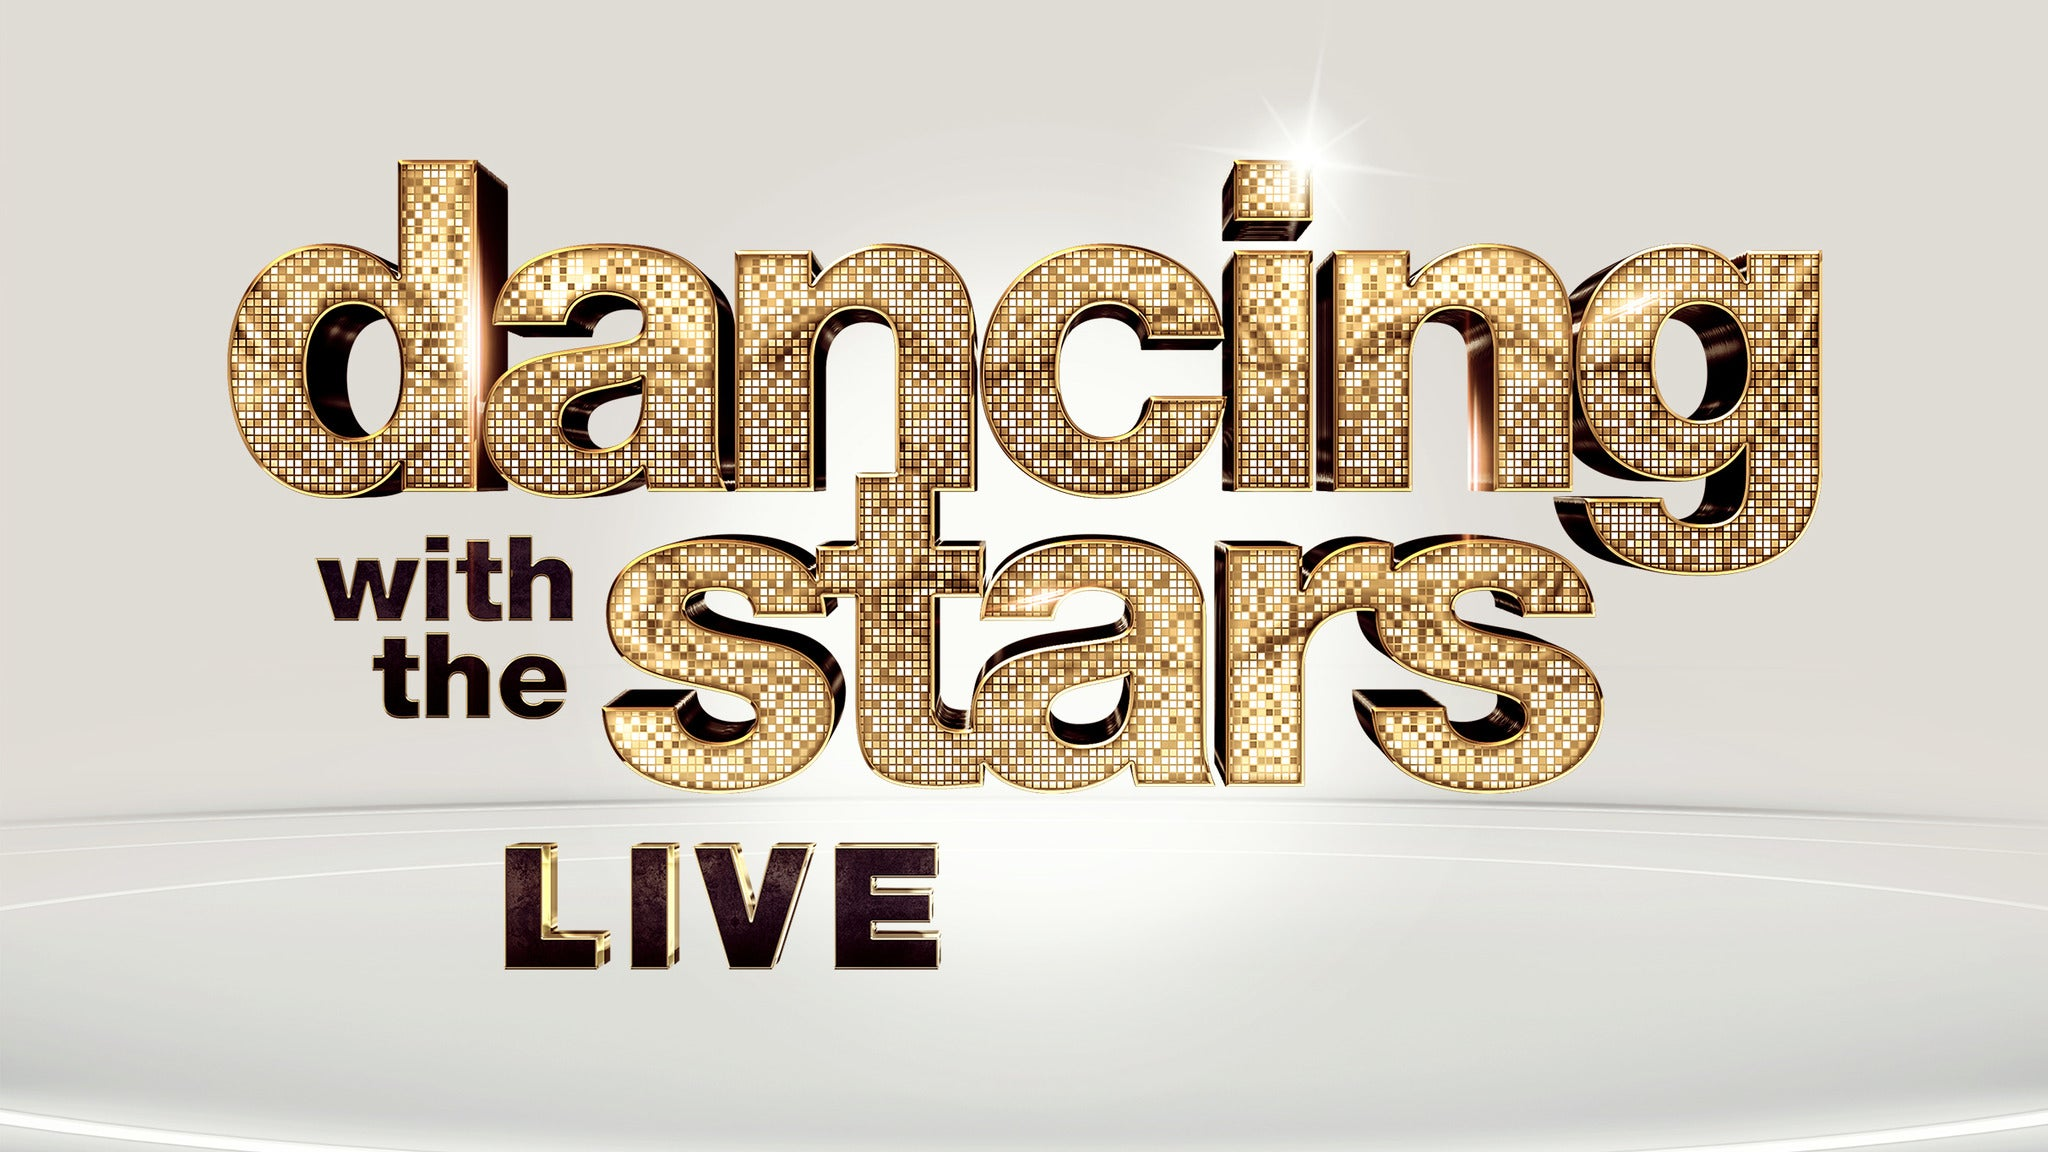 Dancing with the Stars: Live! - 2022 Tour